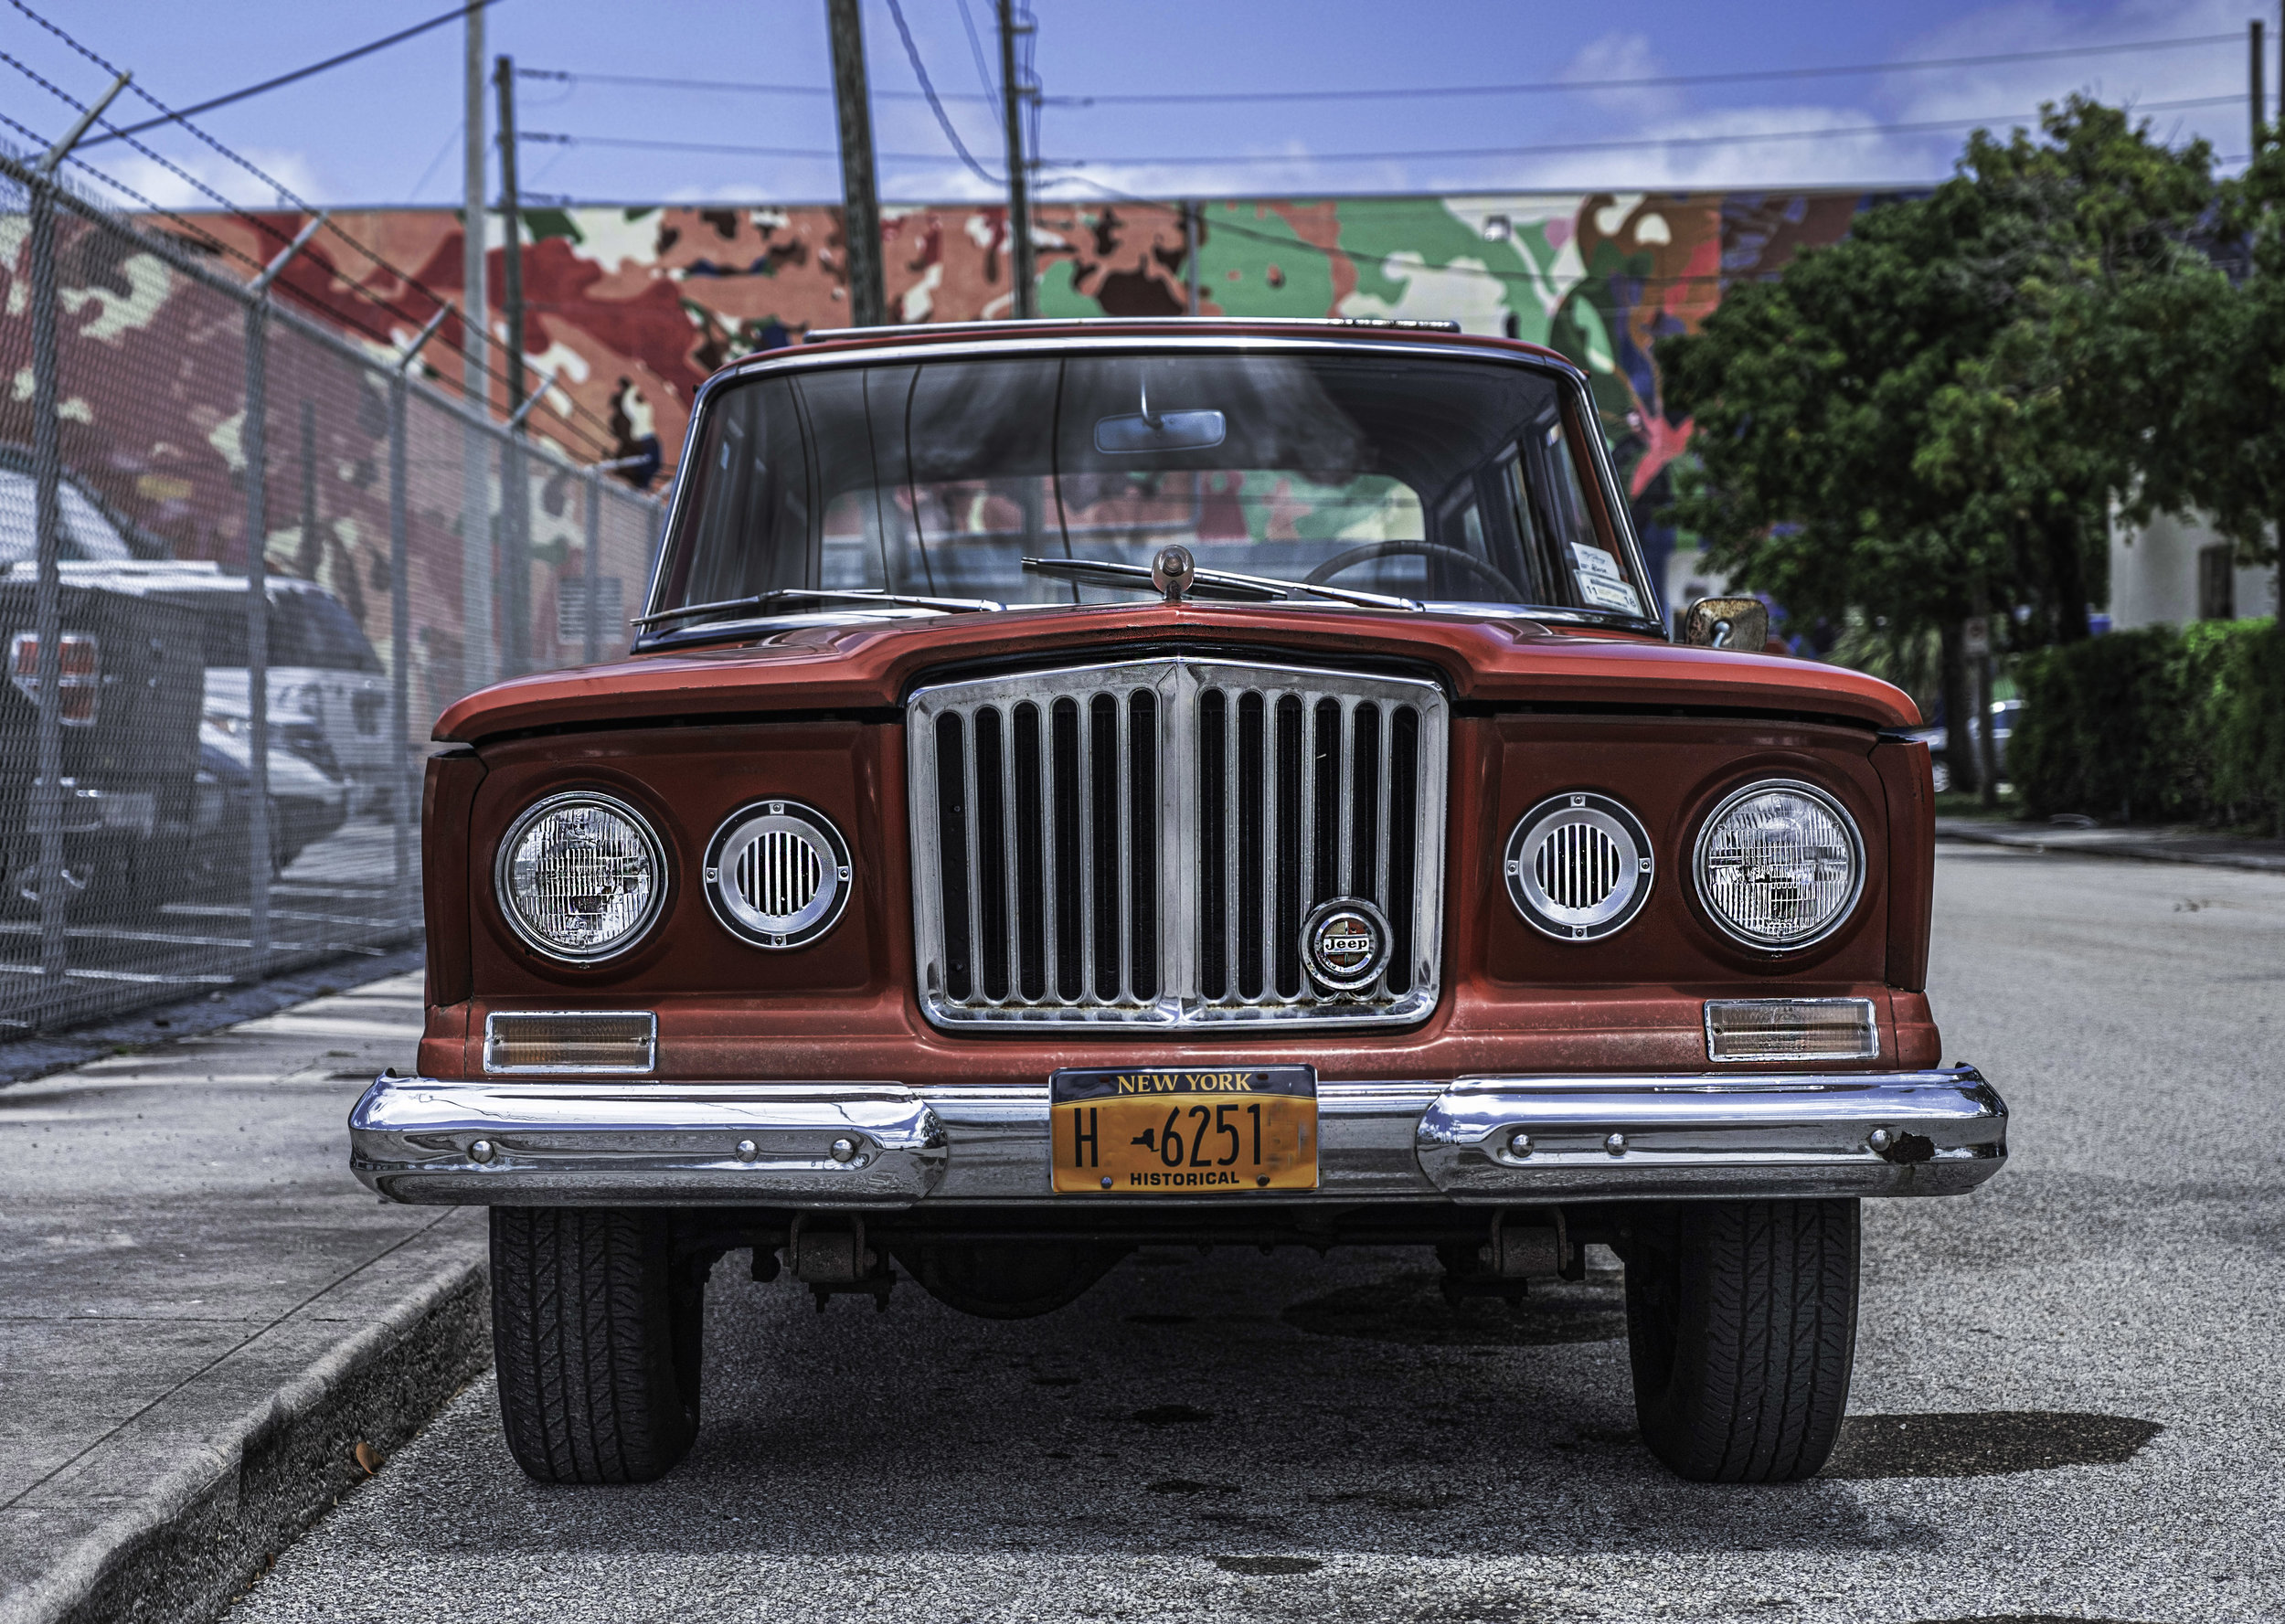 Old Red Jeep.jpg